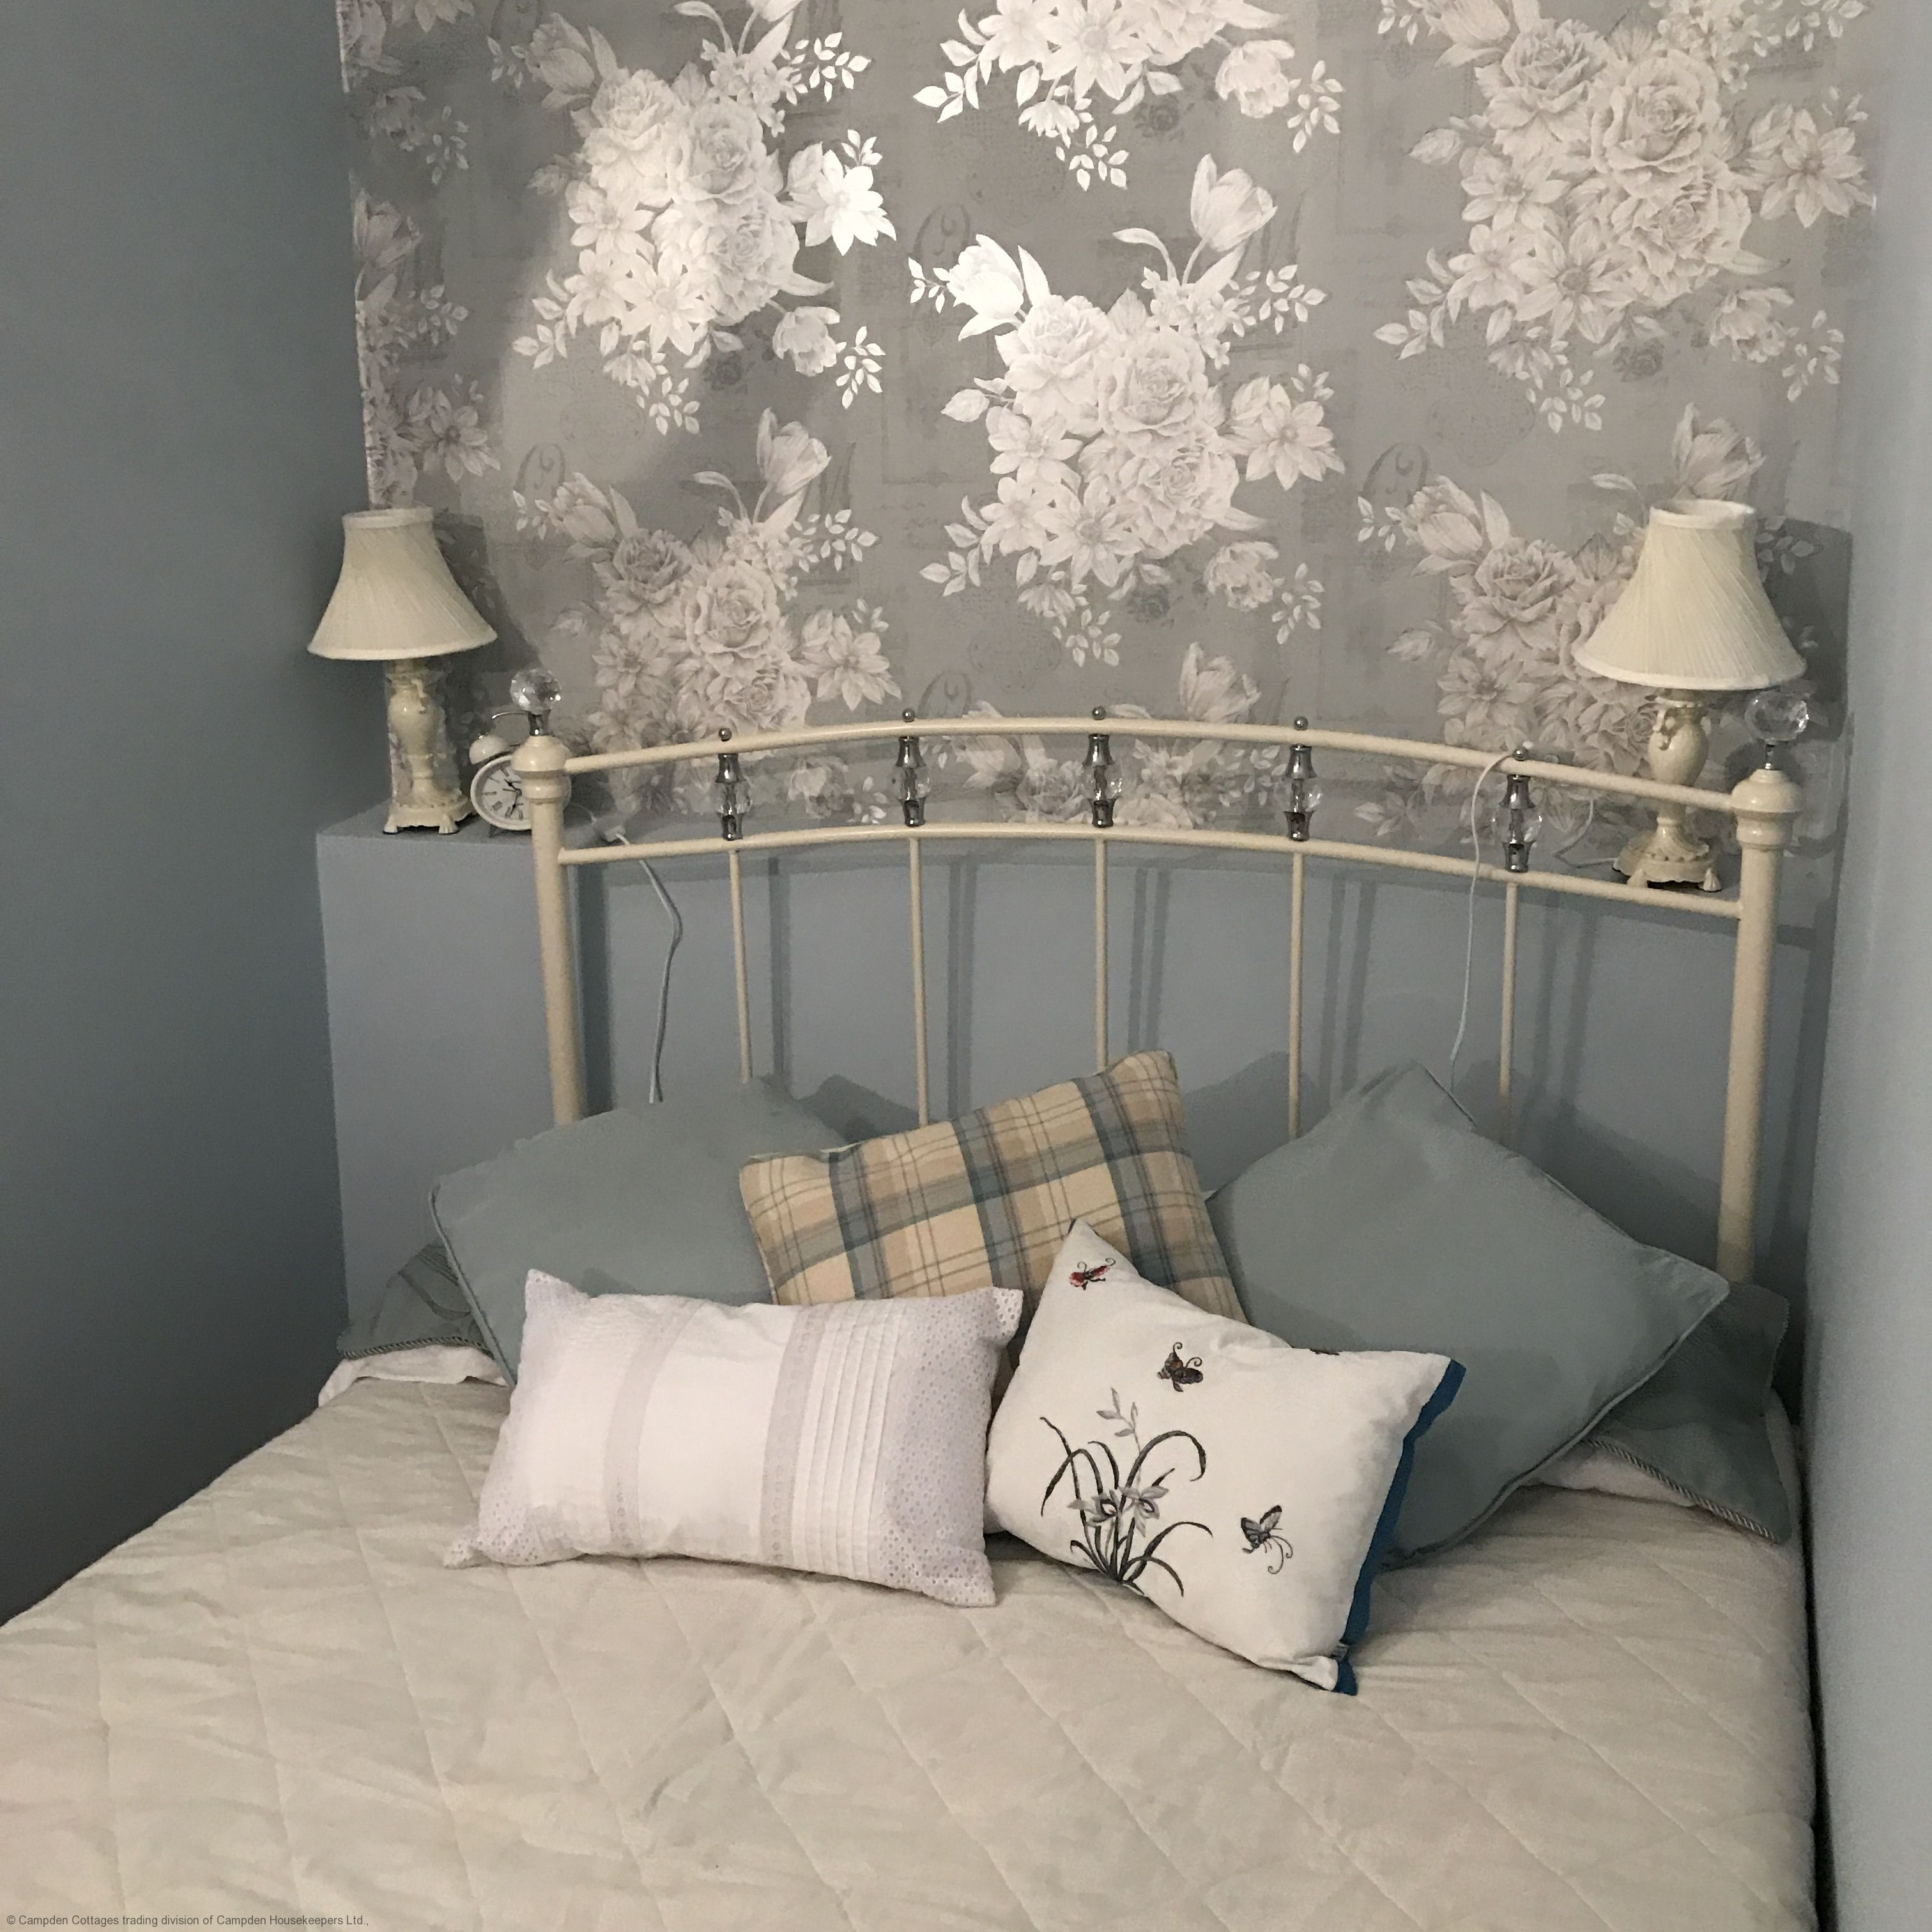 Double Cream metal bedstead accessorised with Crystals